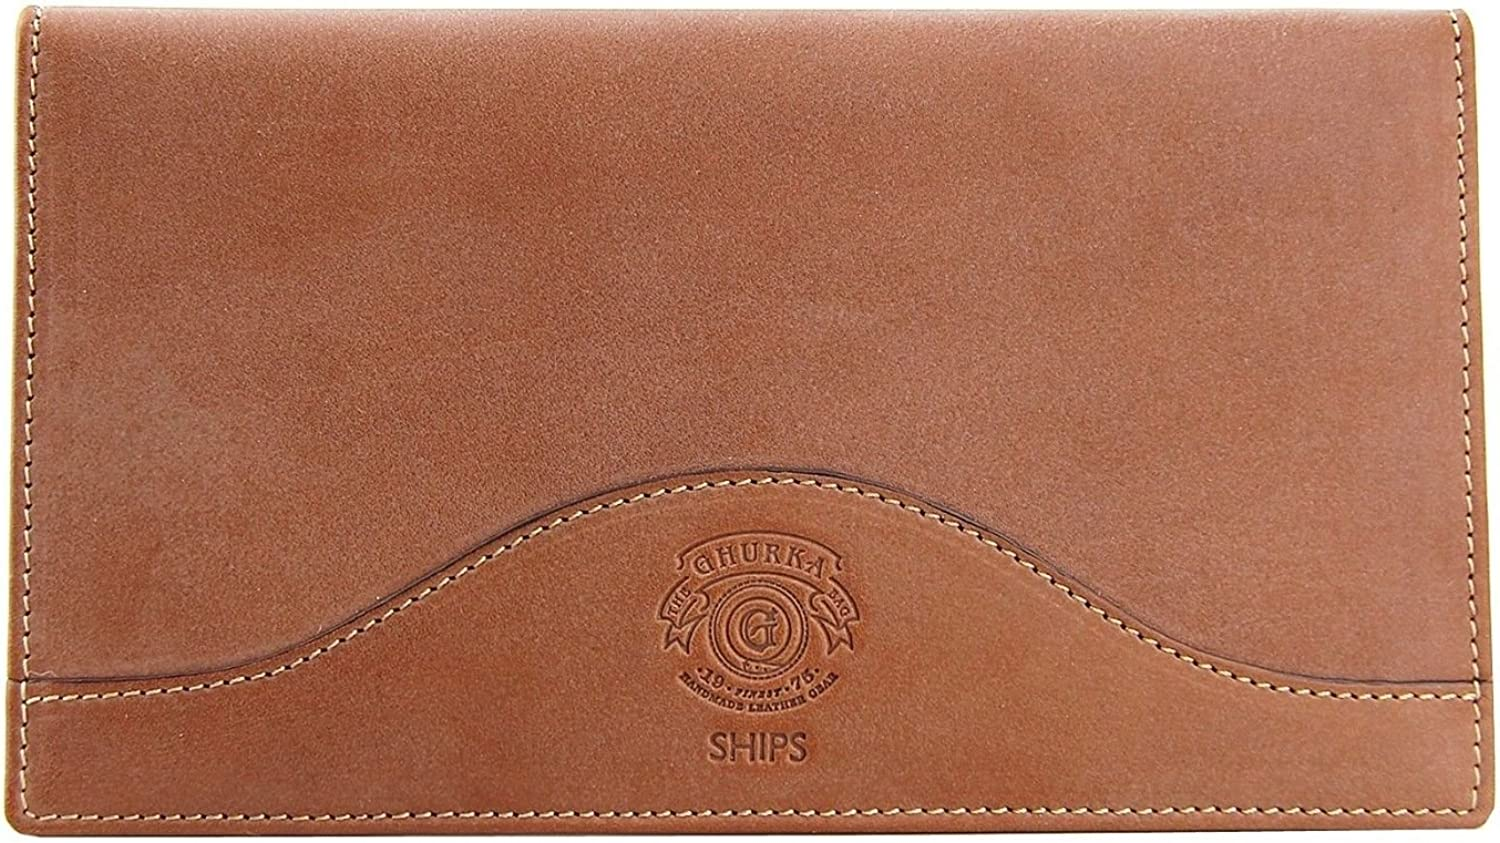 Ghurka Unisex Outlet SALE Passport No. Case 155 Free Shipping Cheap Bargain Gift